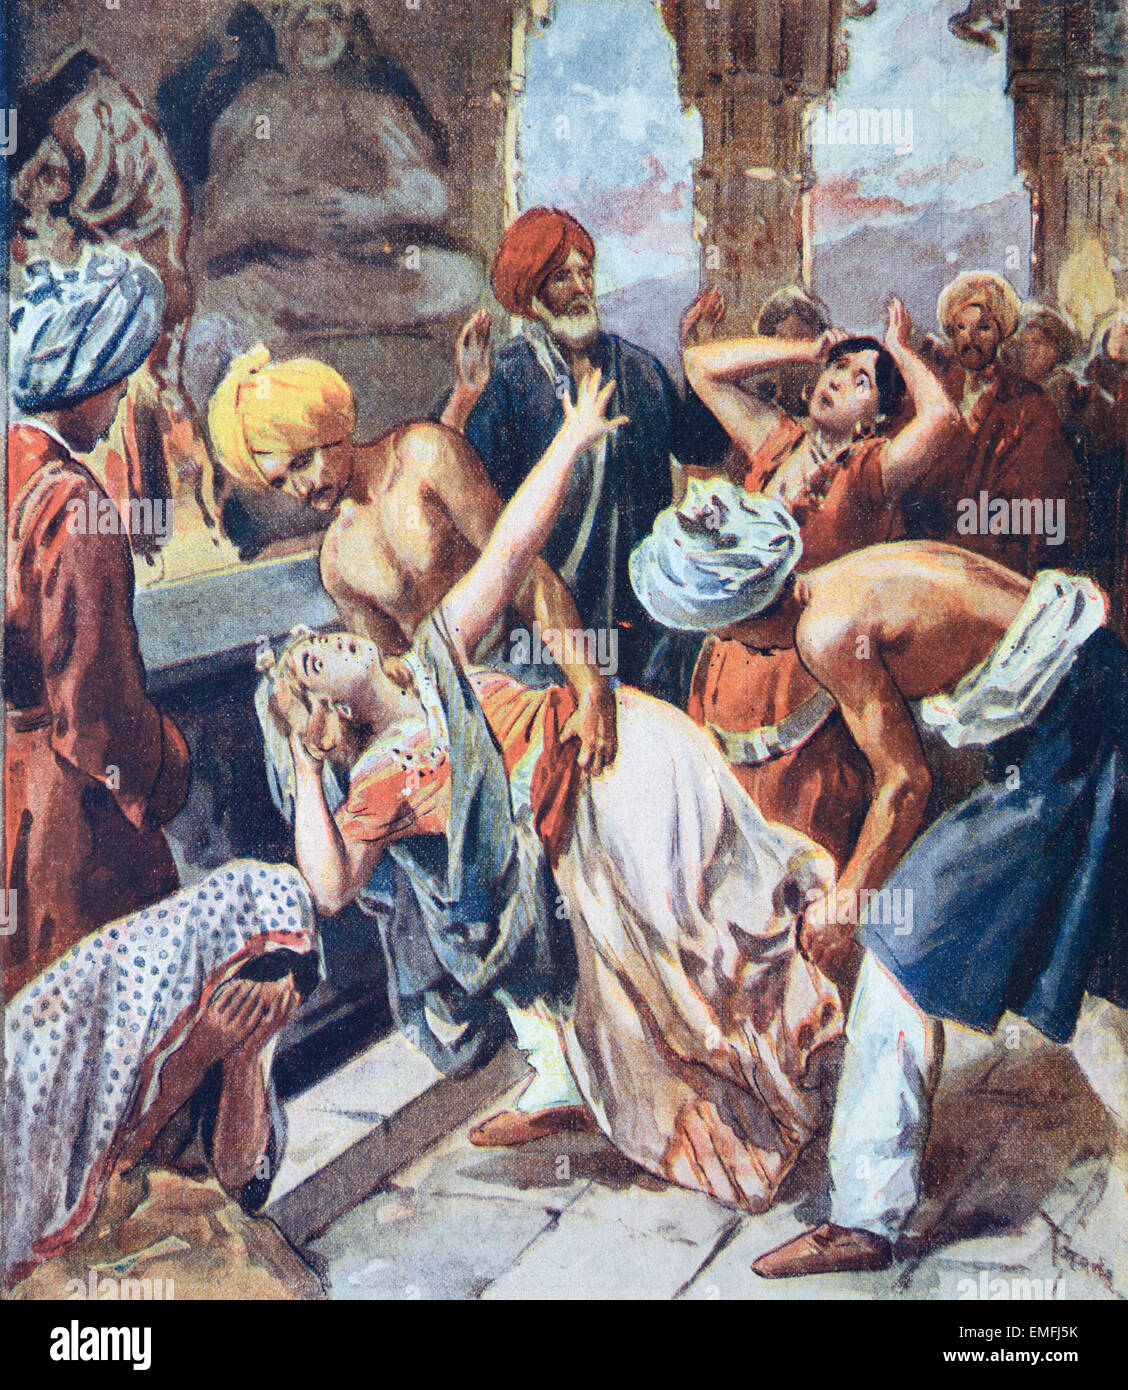 human sacrifice Its because of their gods they fully believed that they owed the blood-debt, so they paid the ultimate price, which was human blood they believed that this would prevent disaster by continually performing this ritual.